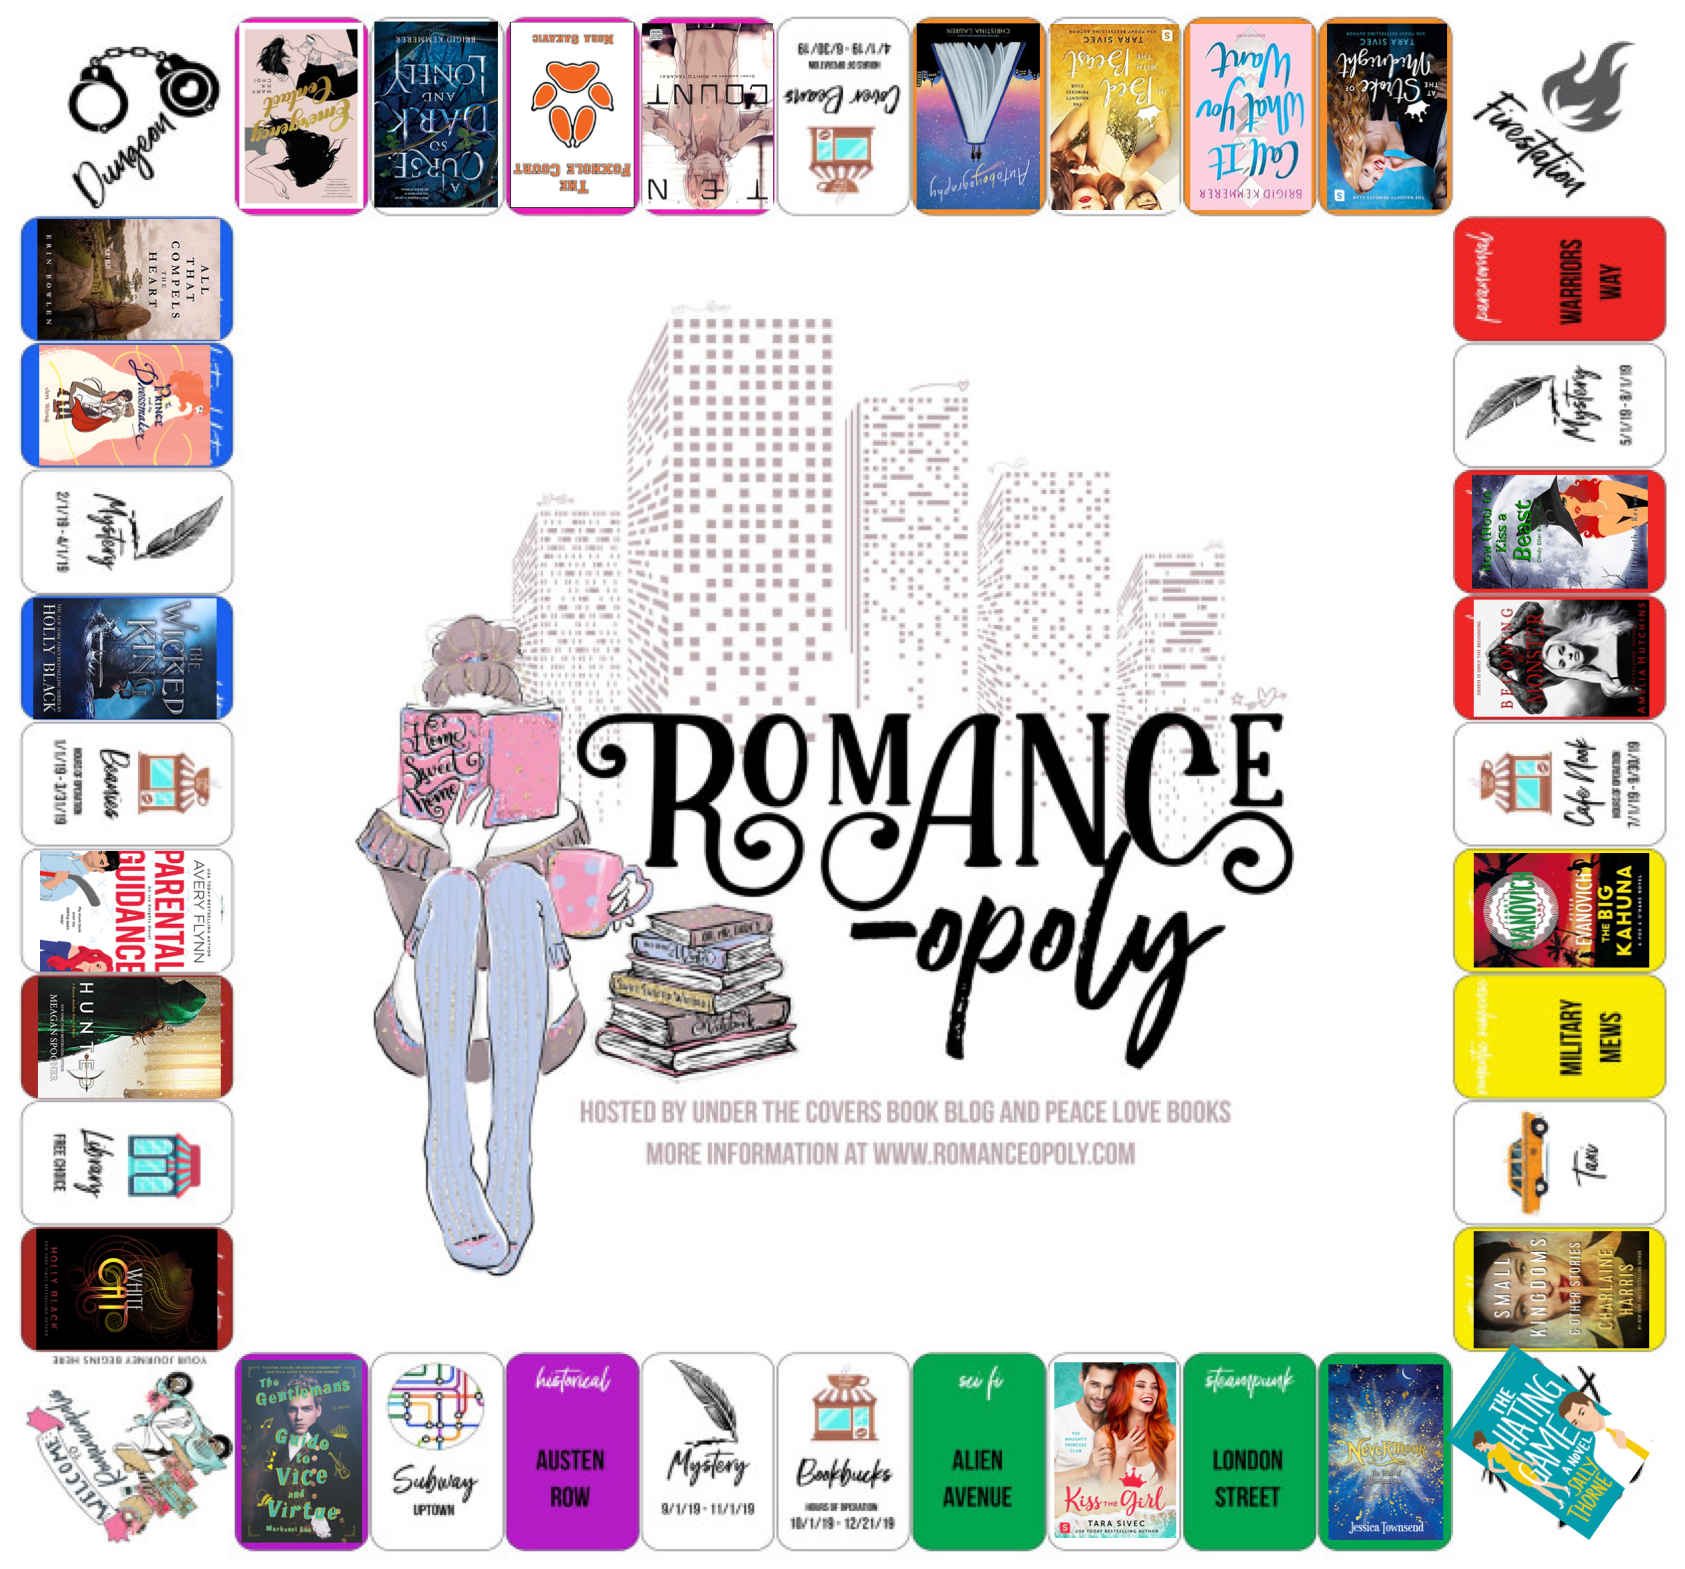 August progress against the Romance-opoly board game